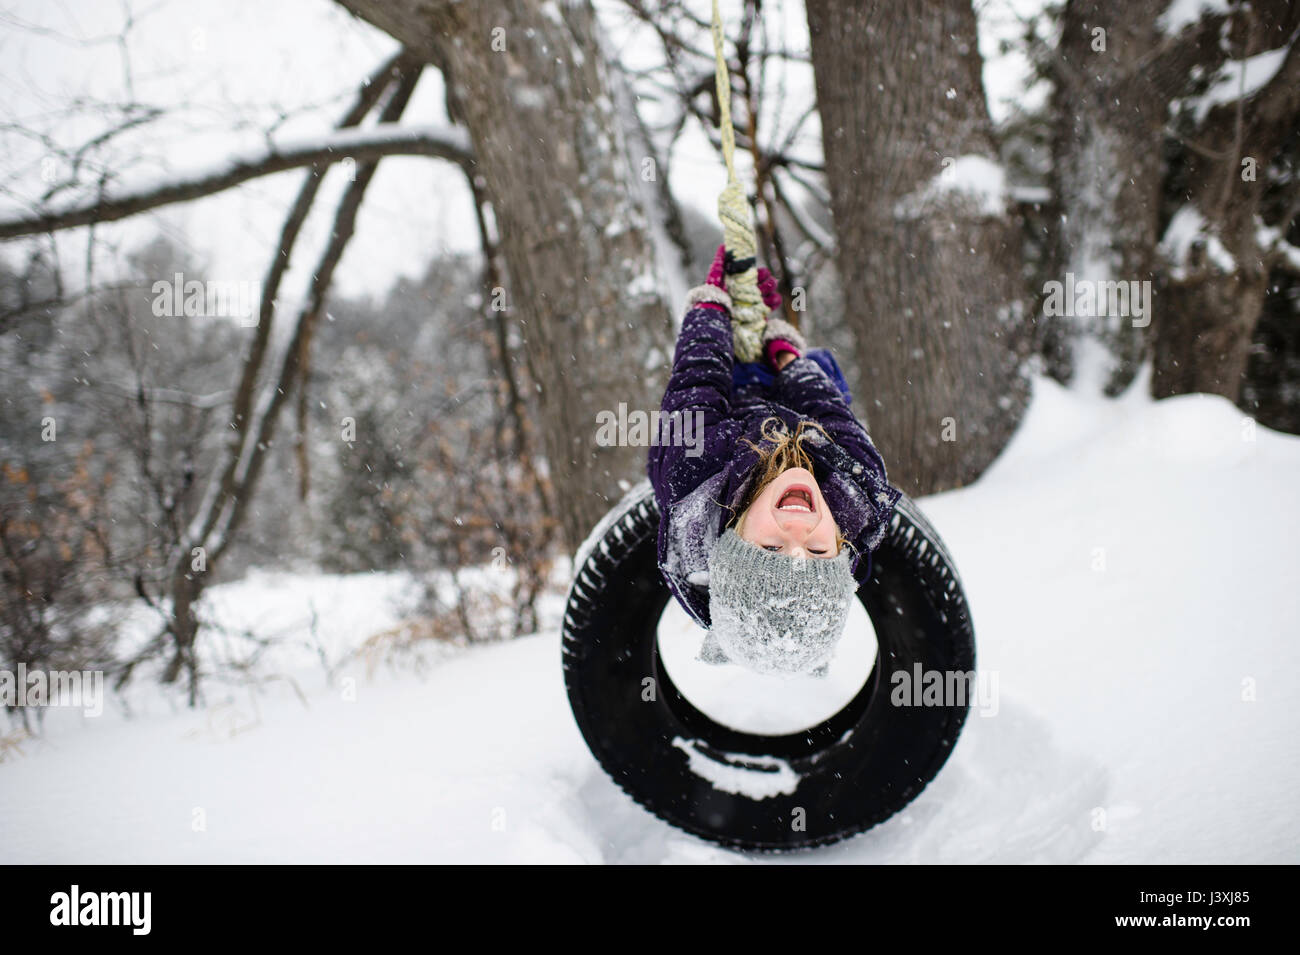 Girl upside down on tire swing in snow - Stock Image